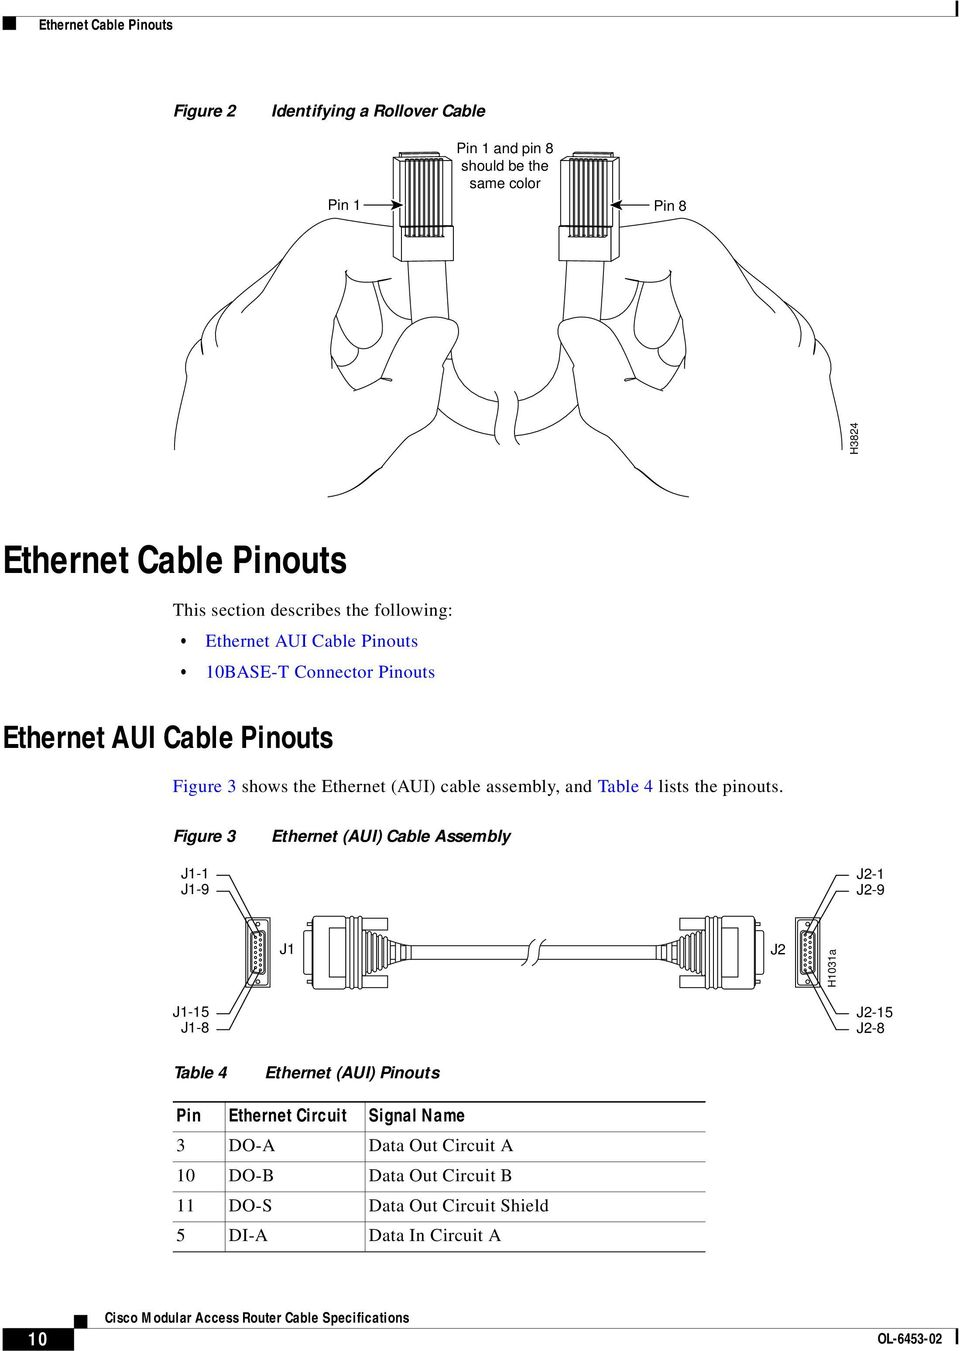 medium resolution of cable assembly and table 4 lists the pinouts